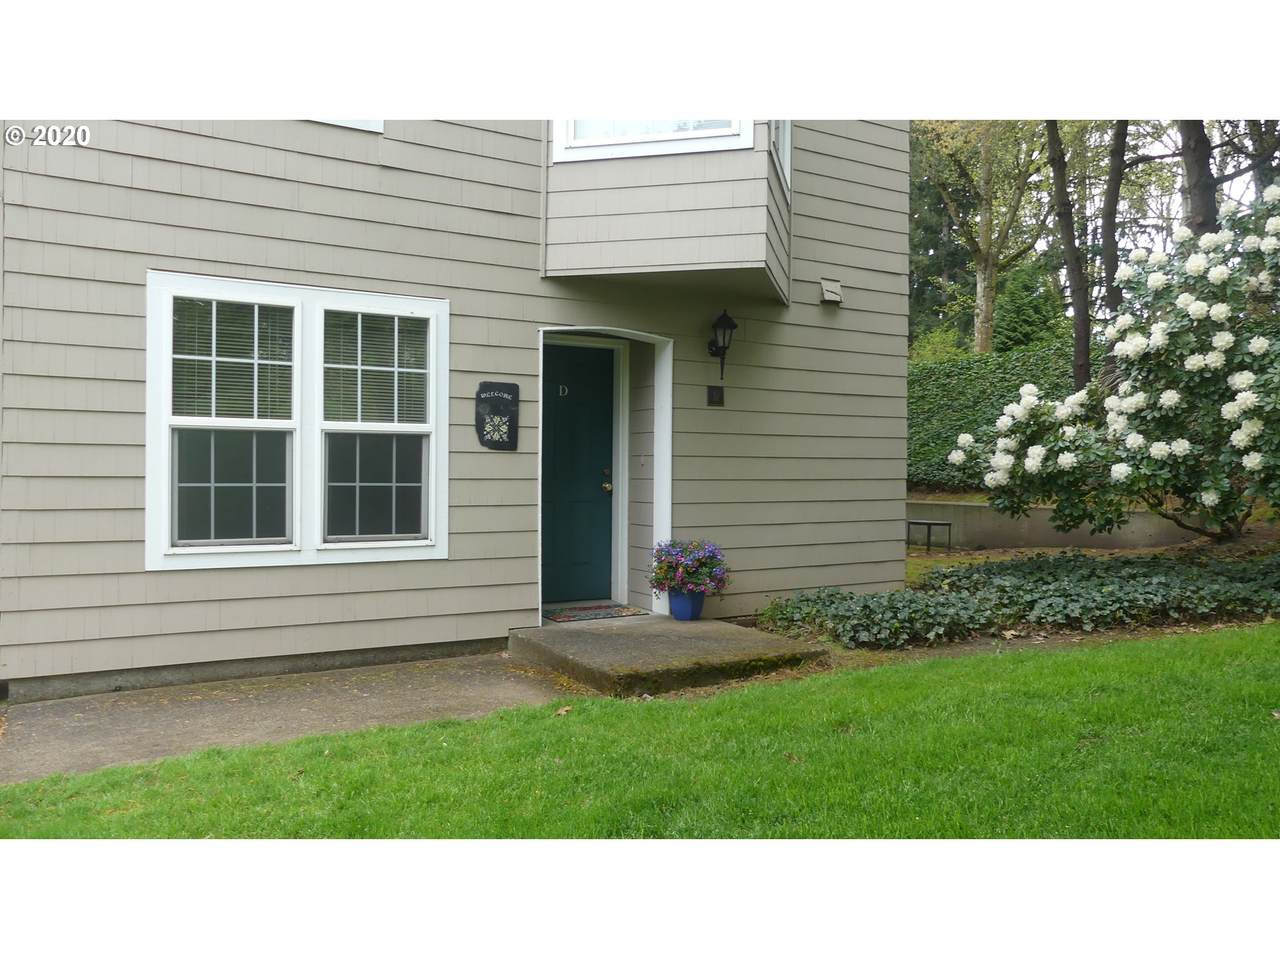 8710 Curry Dr - Photo 1